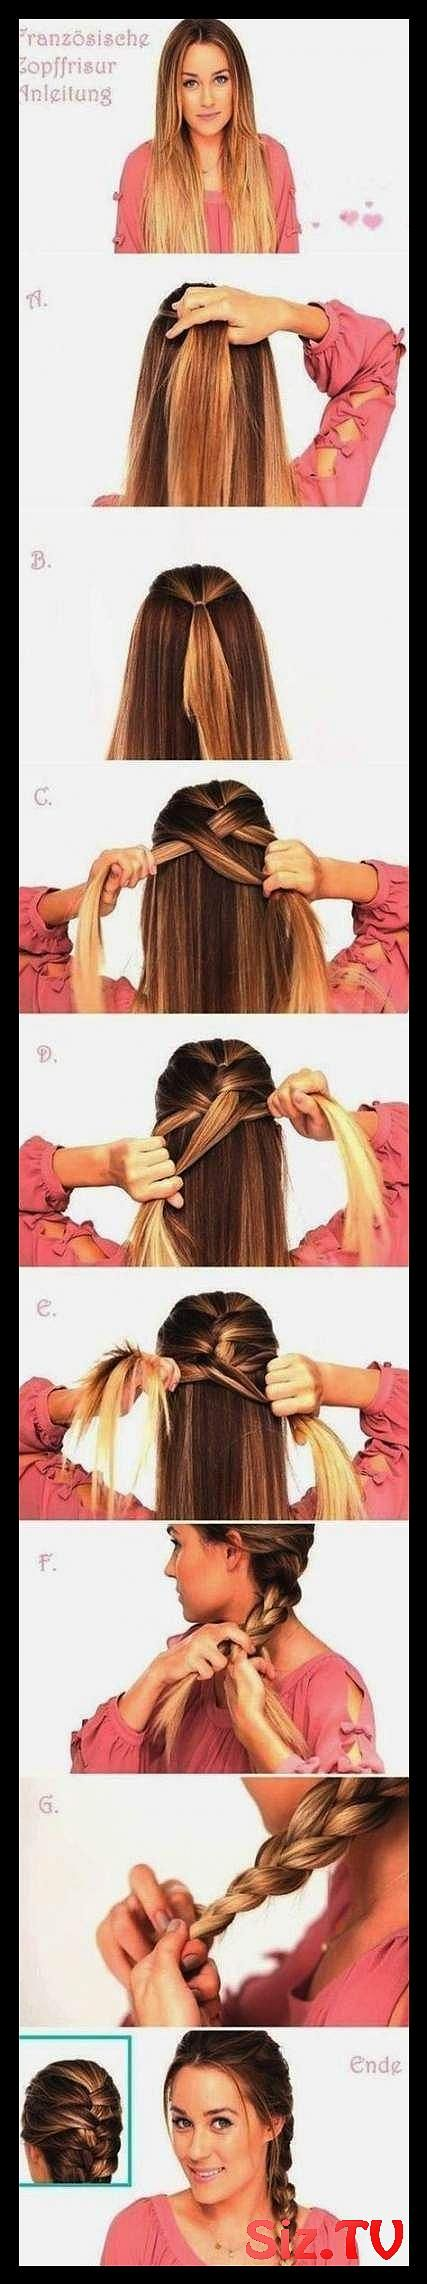 Super Hairstyles Updo Easy Lazy Girl French Braids Ideas Braids Easy French Girl Hairs Super Hairstyles Updo Easy Lazy Girl French Braids Ideas Braids...